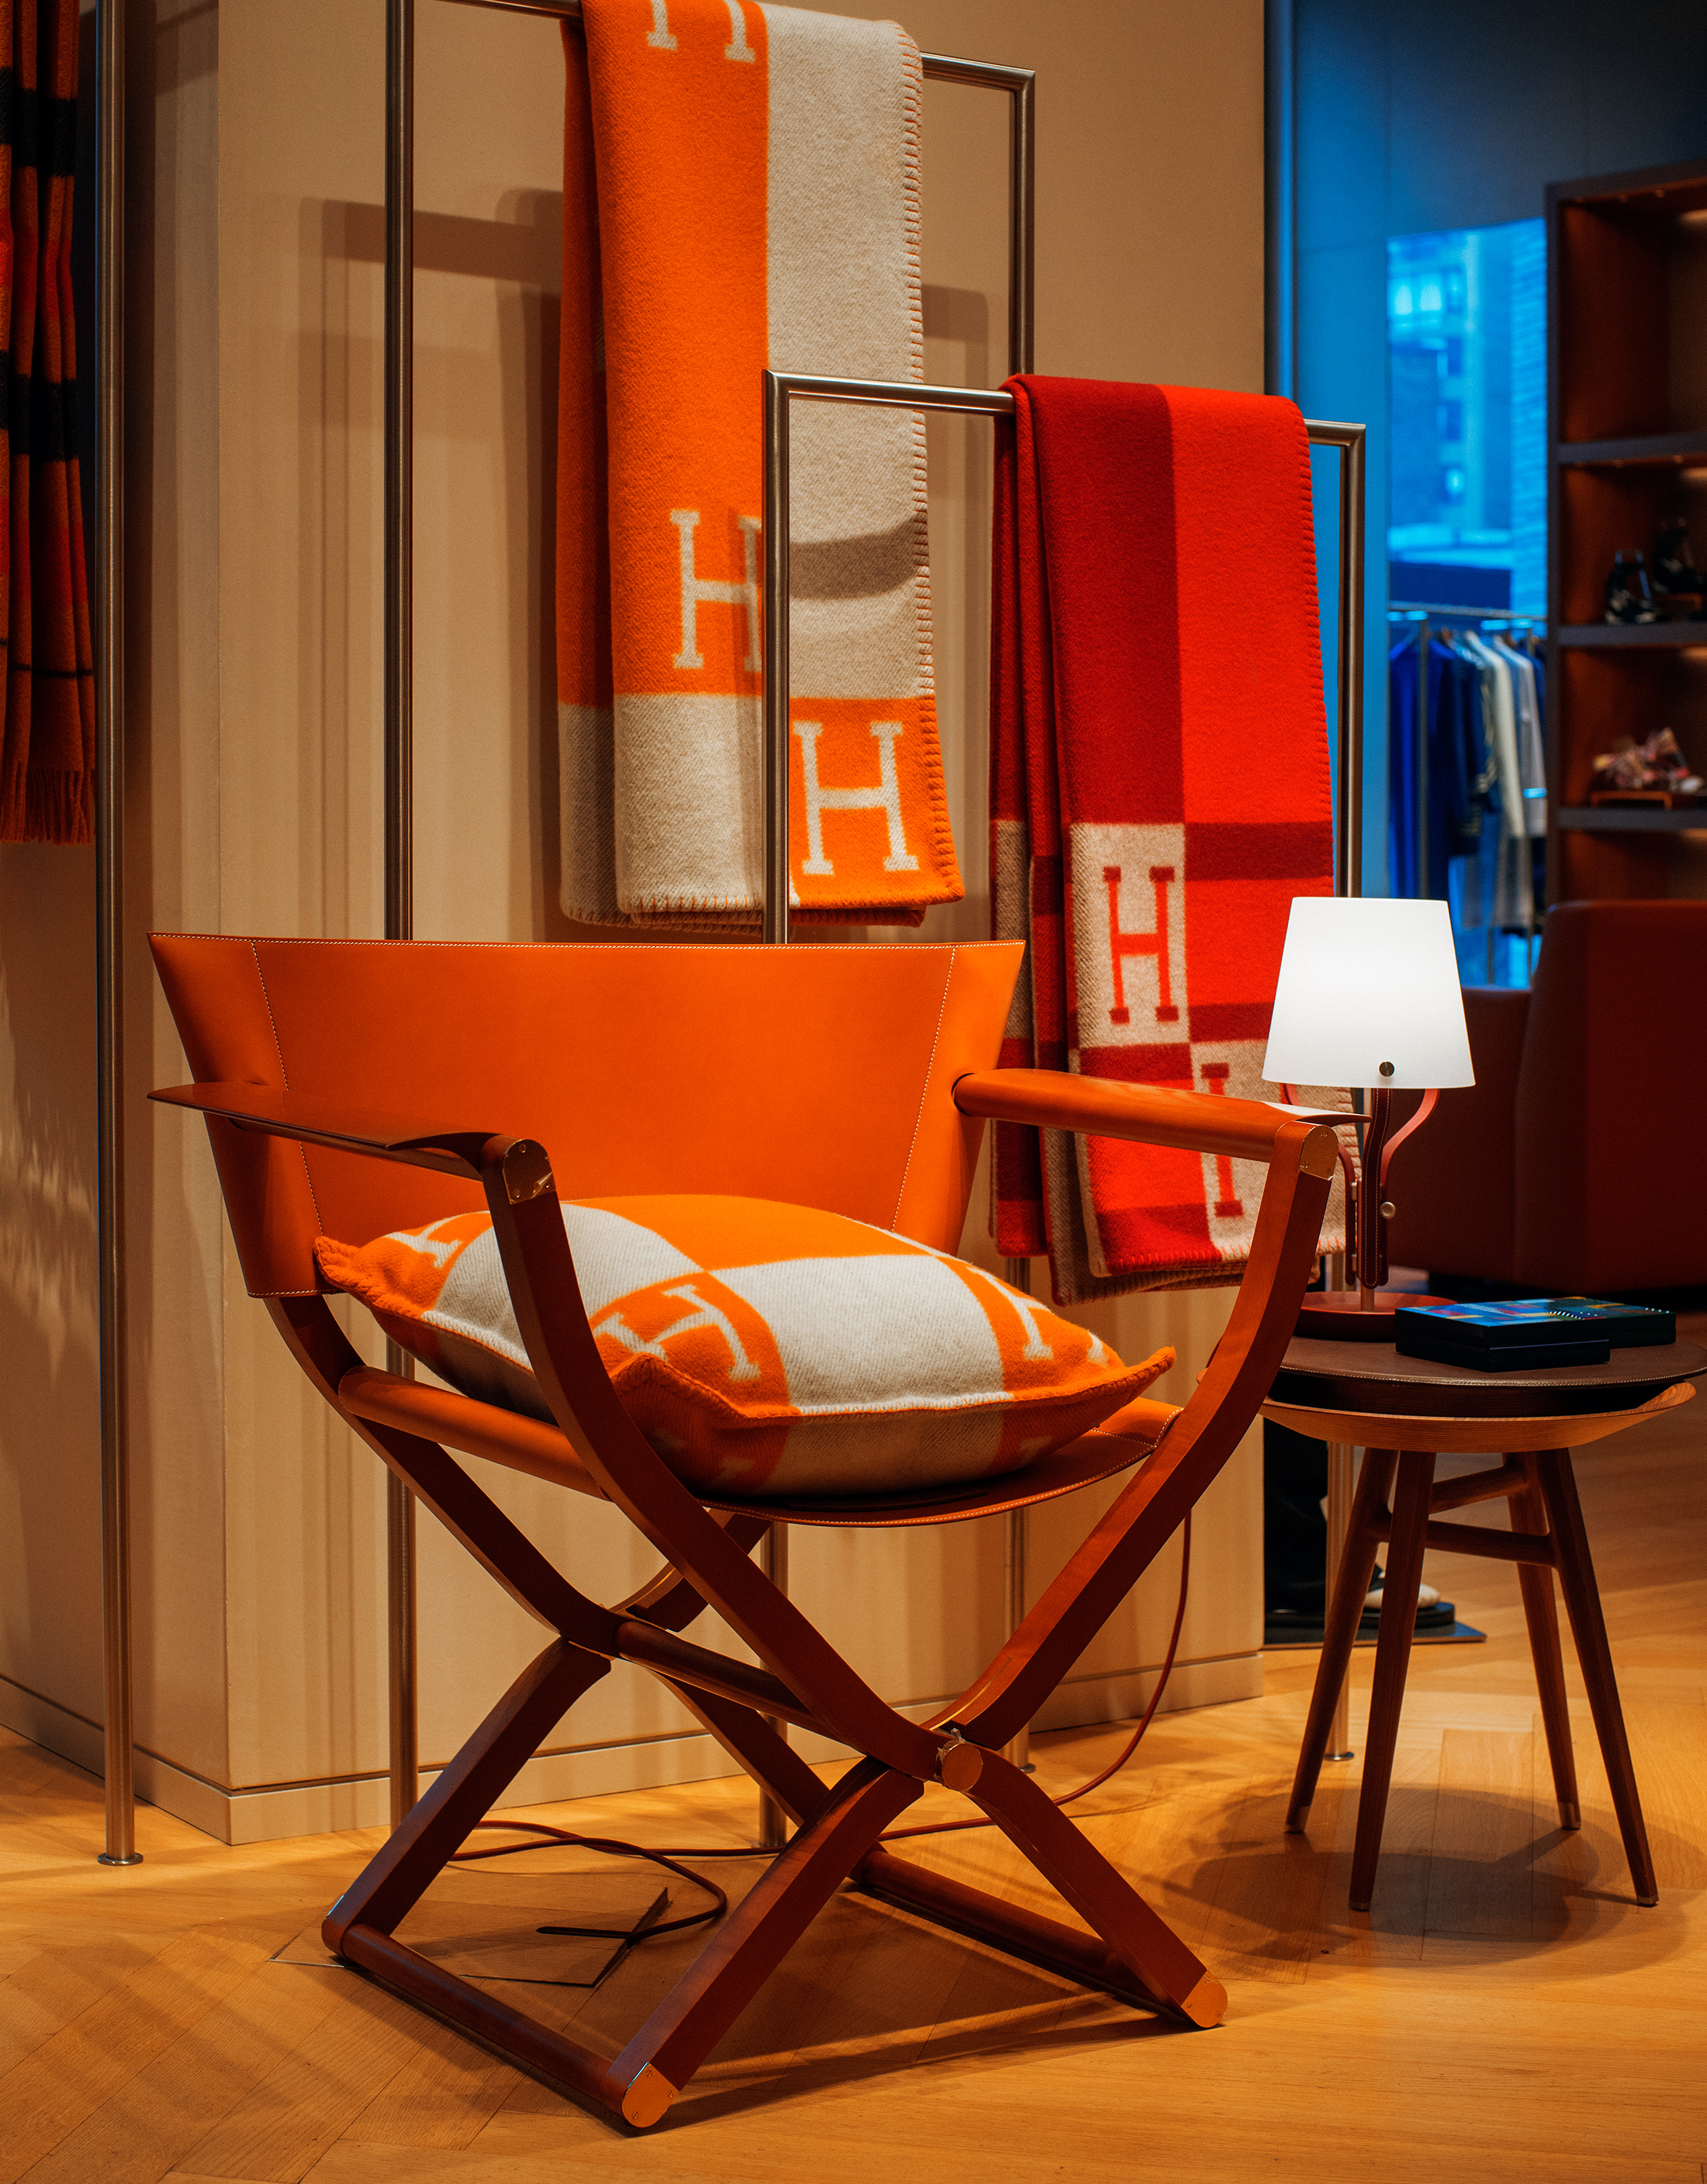 Hermès Chair